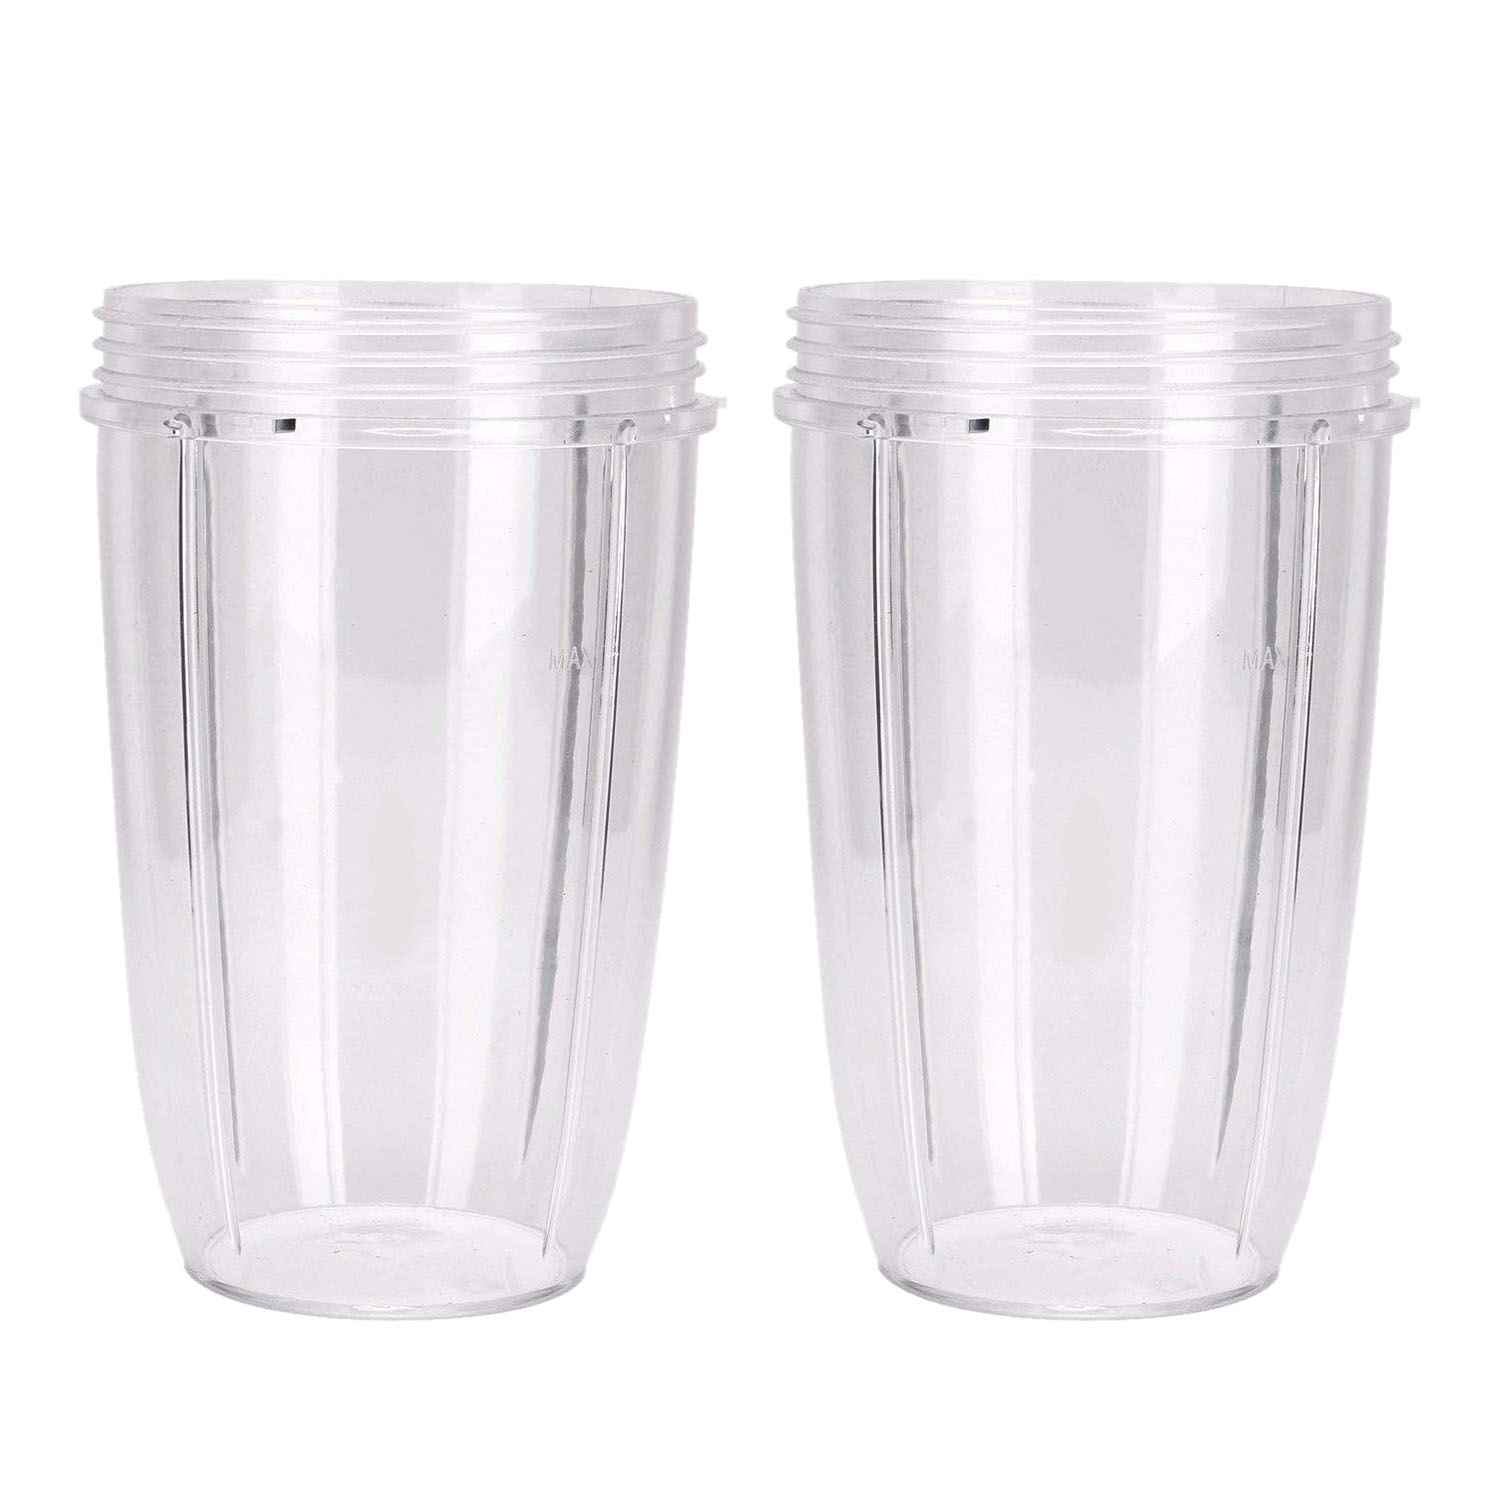 2PCS Juicer Cup Mug Clear Replacement For NutriBullet Nutri Bullet Juicer